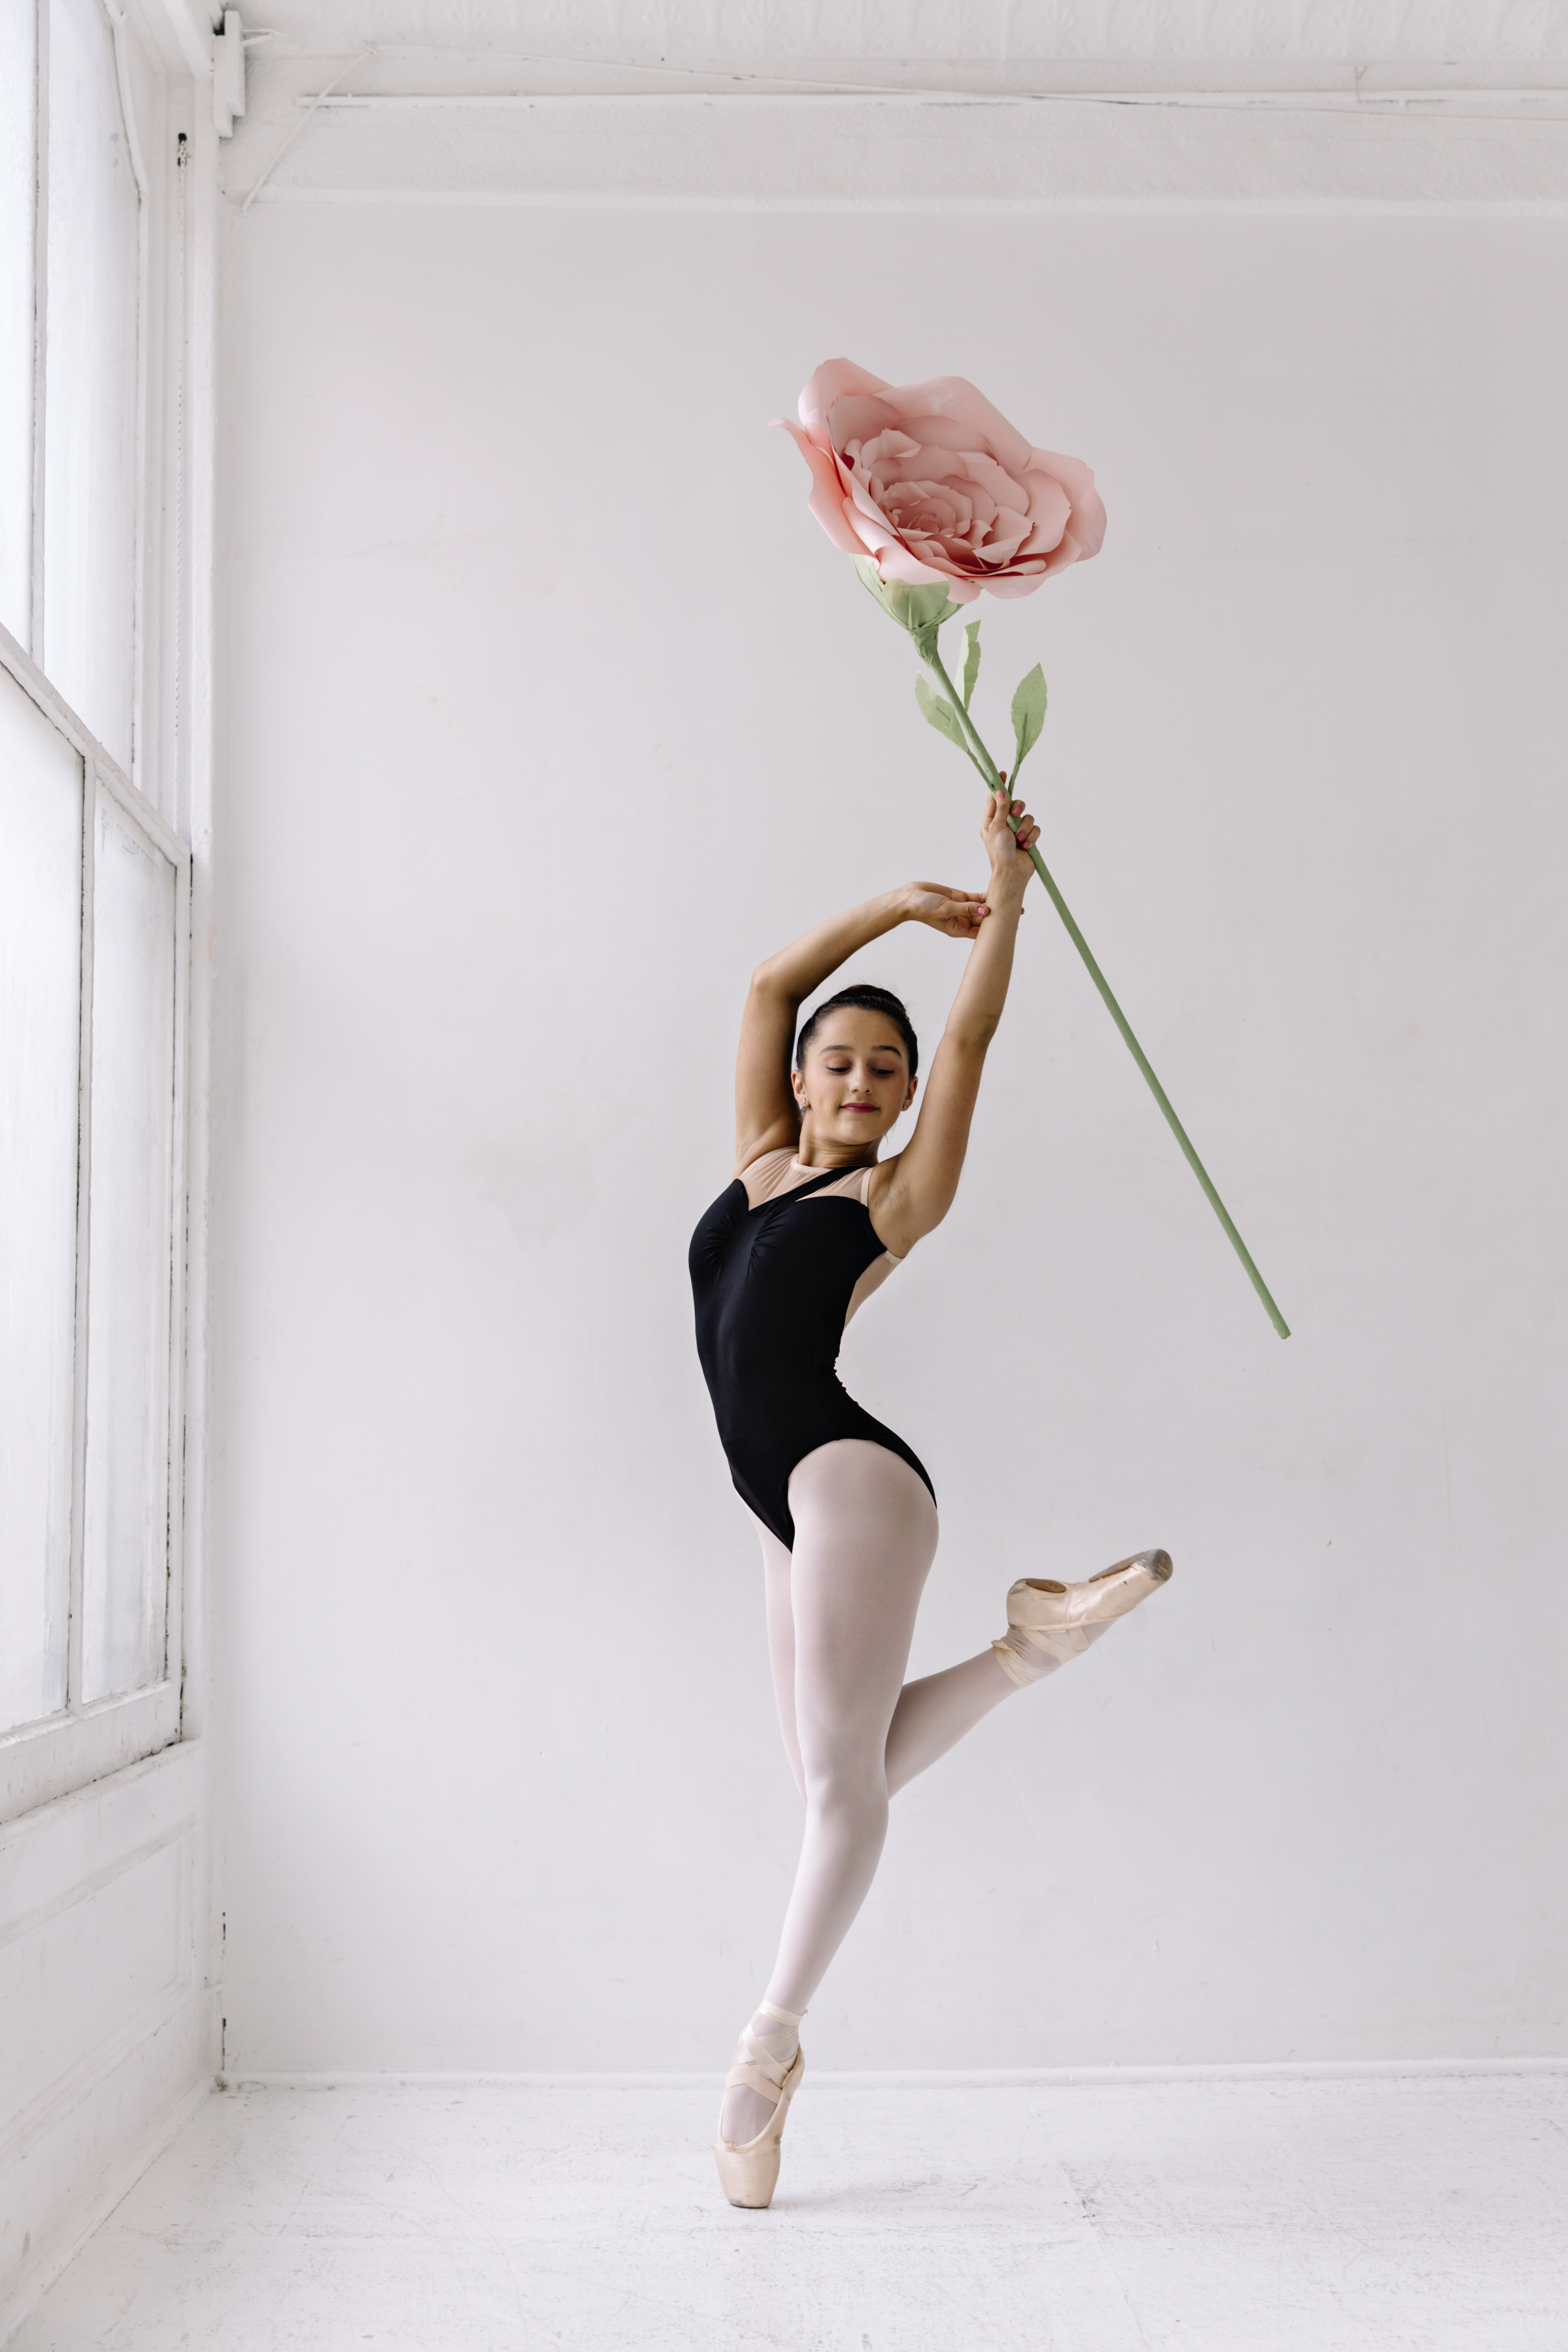 Ballerina with rose